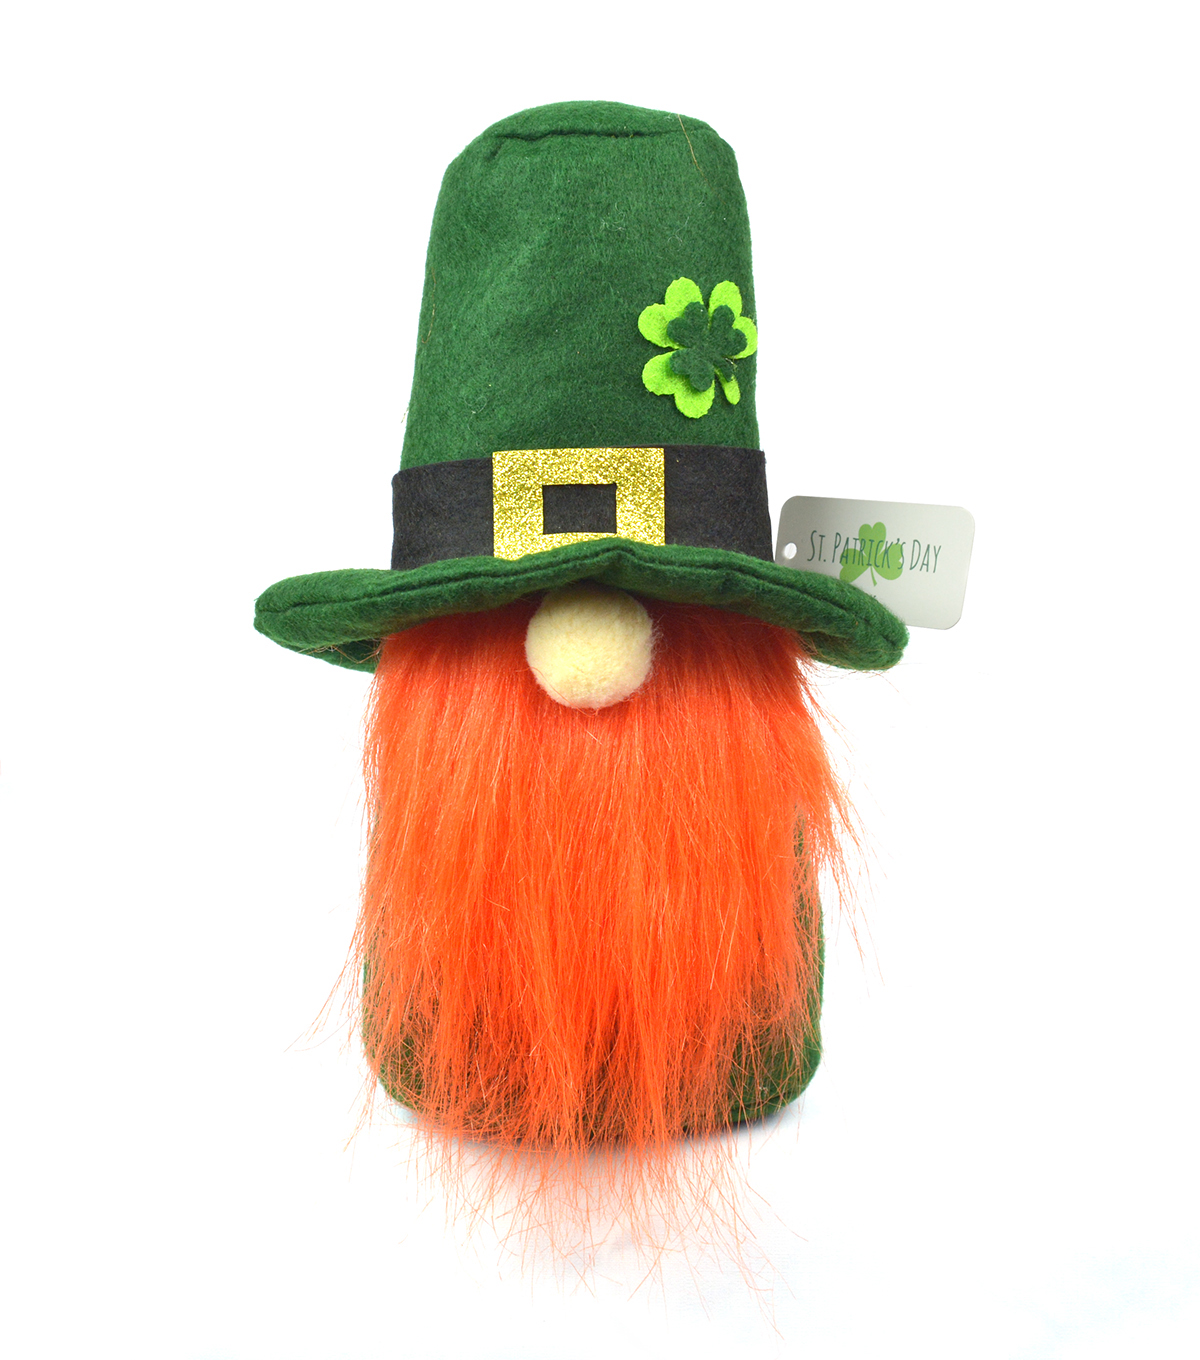 St. Patrick\u0027s Day Decor Gnome